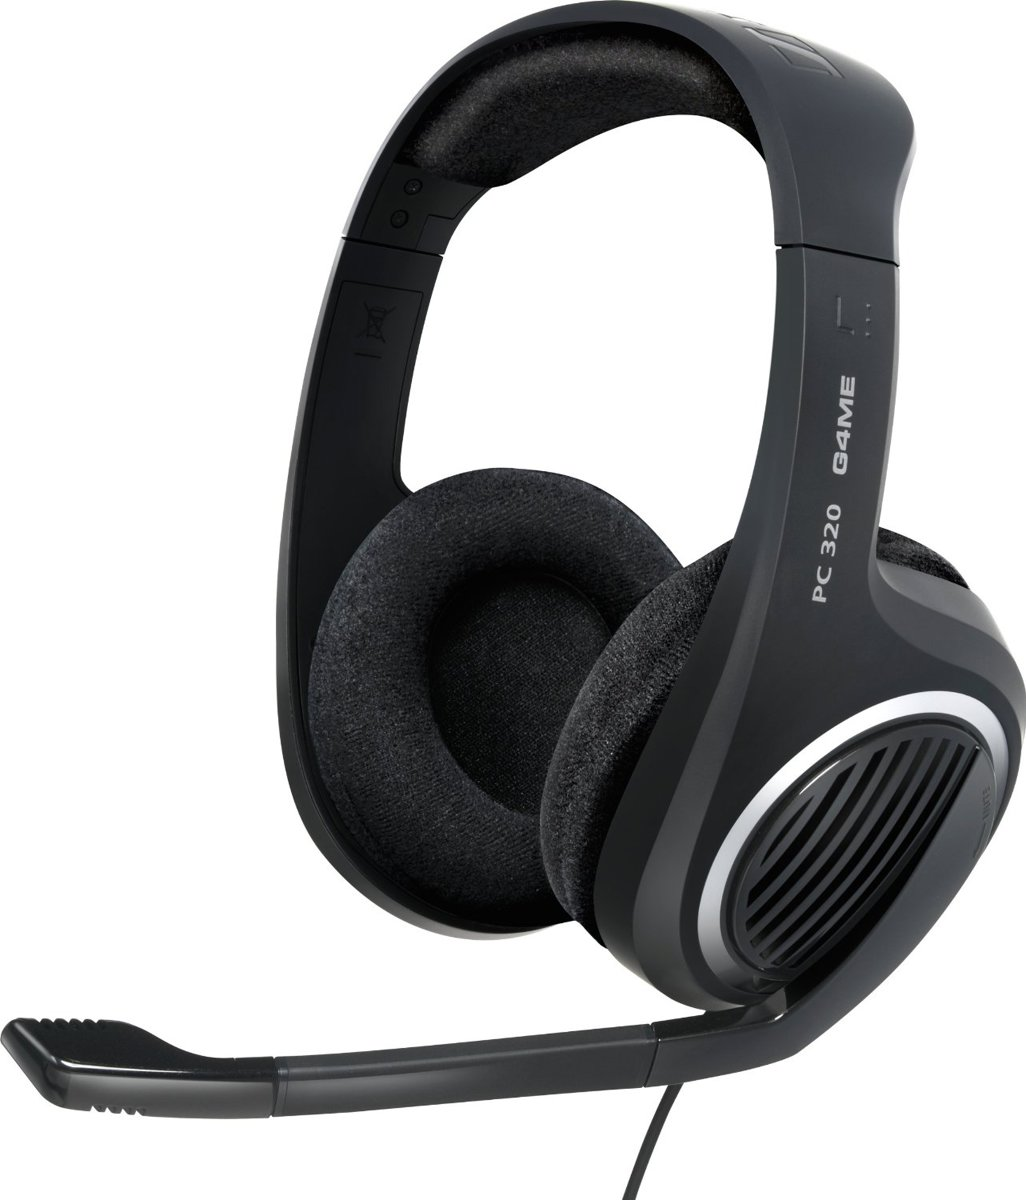 PC 320 - Game headset - Zwart